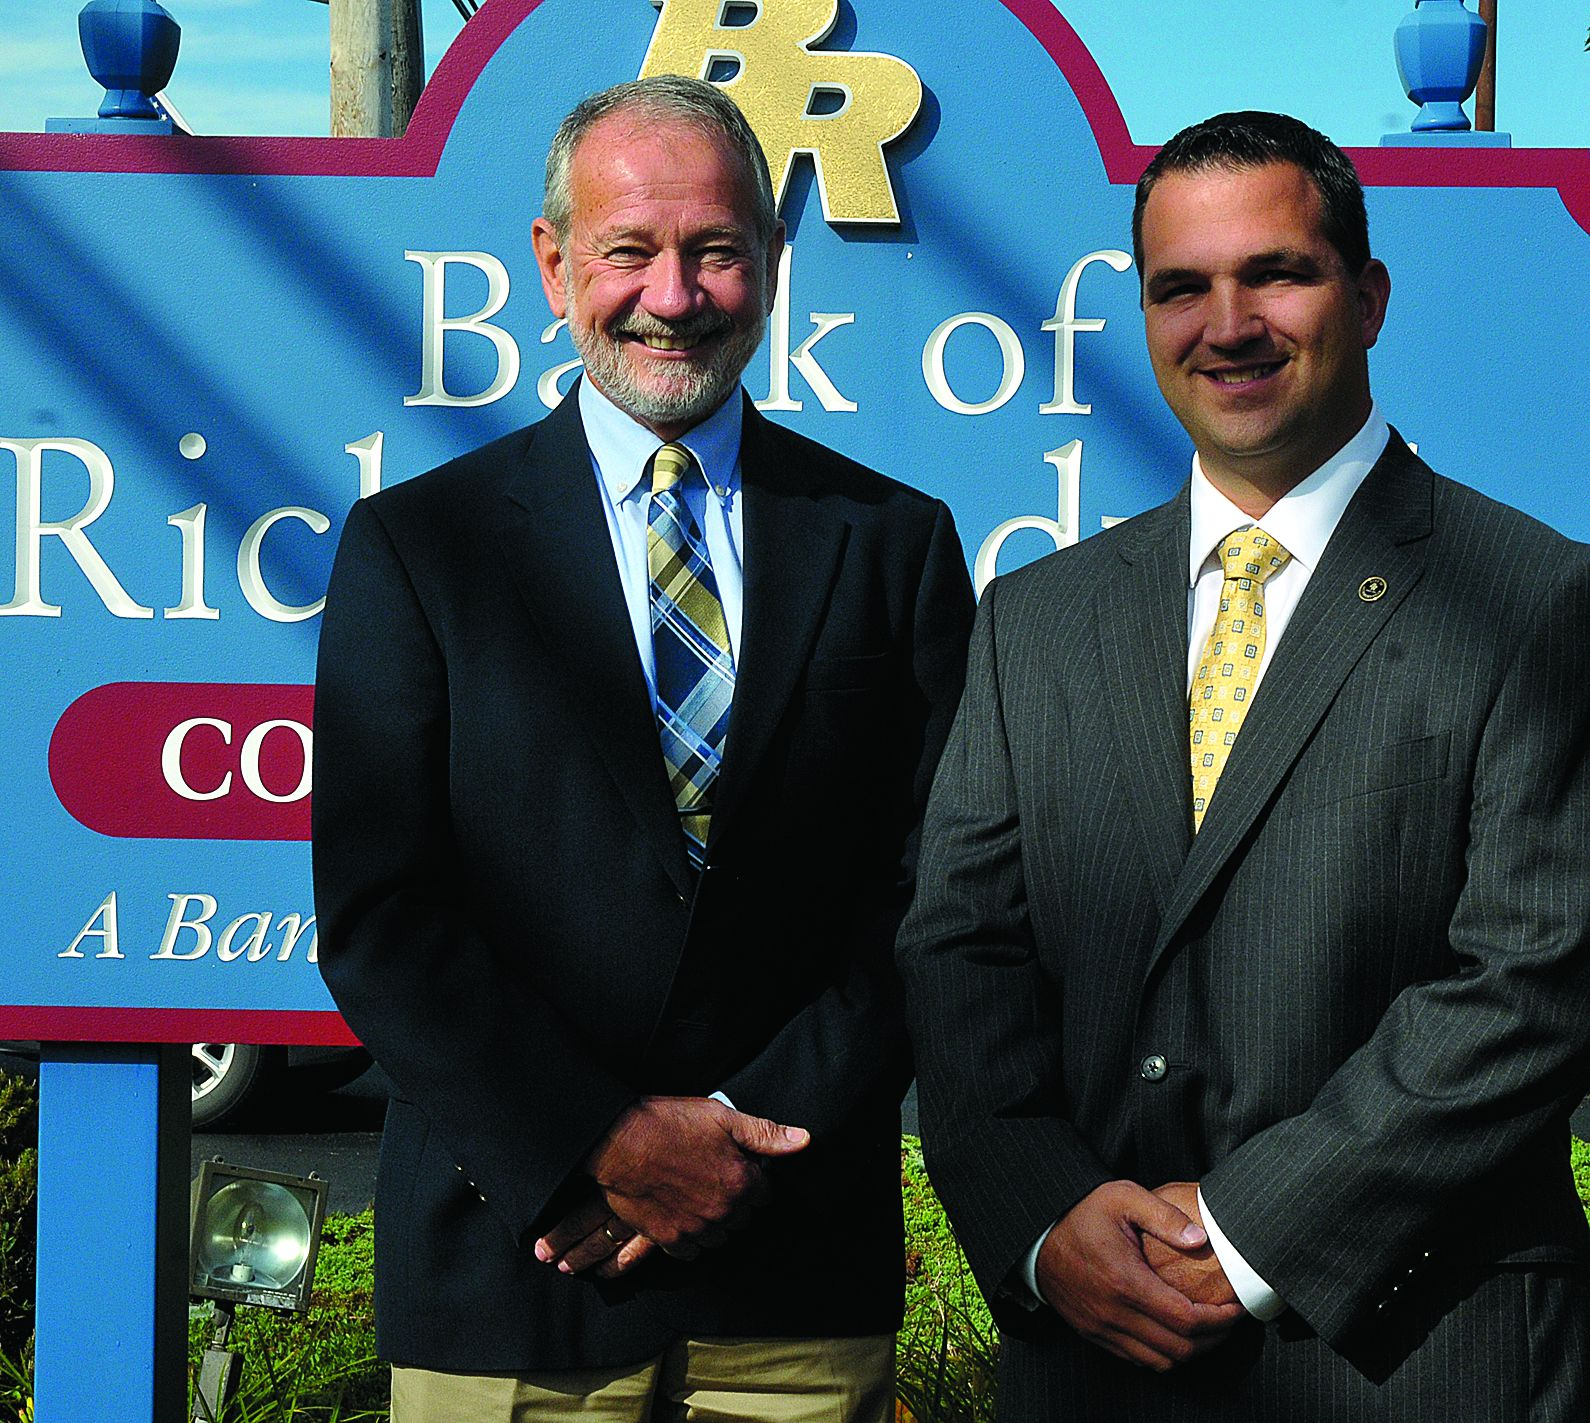 Mr. President: Steve Palmer to replace Randy Crapser at Bank of Richmondville